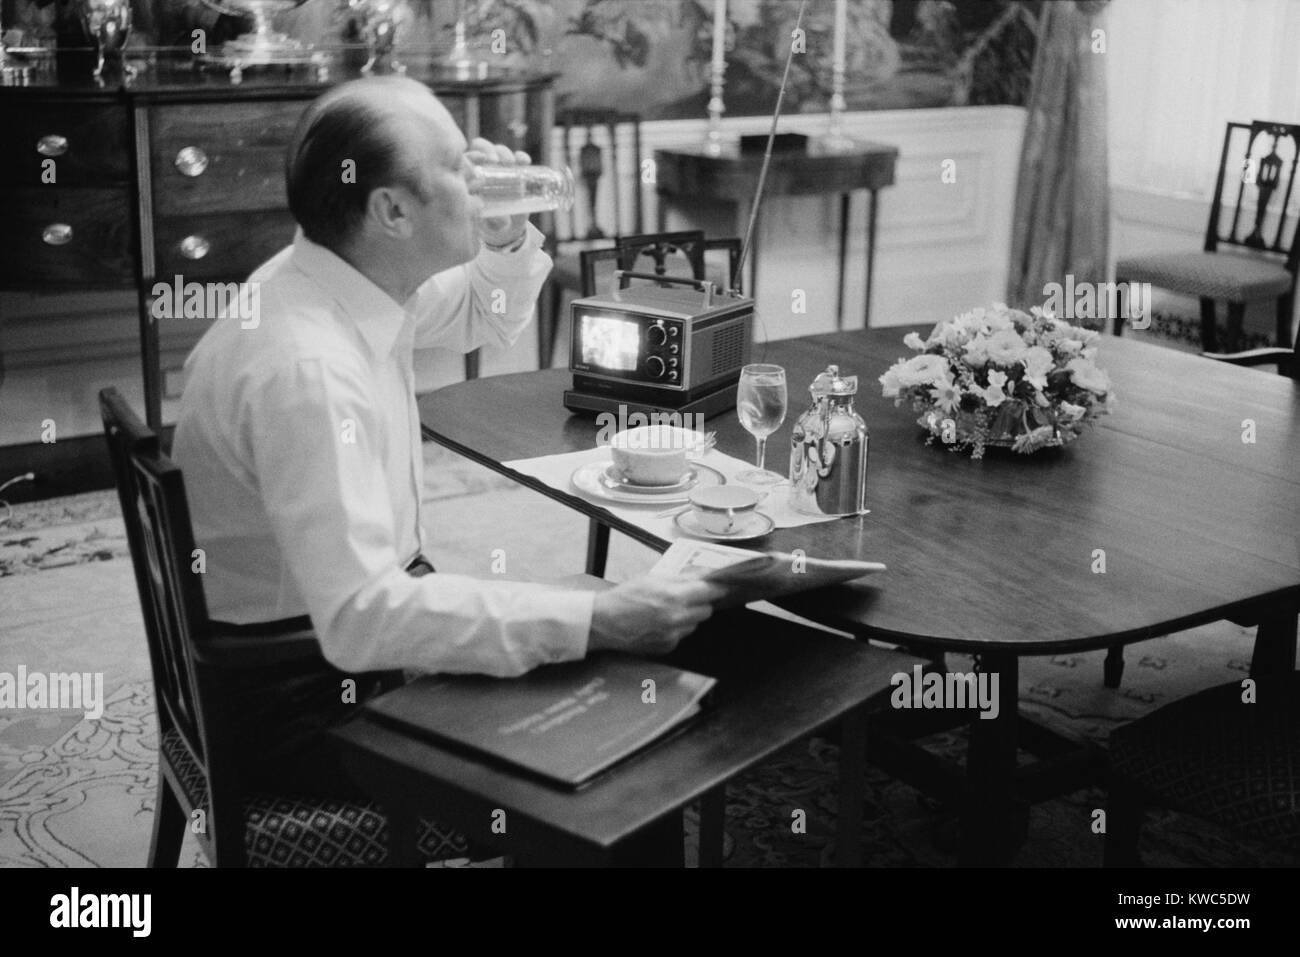 President Gerald Ford eating breakfast at the White House, Feb. 6, 1975. His 4 x 5 inch portable TV was the latest - Stock Image